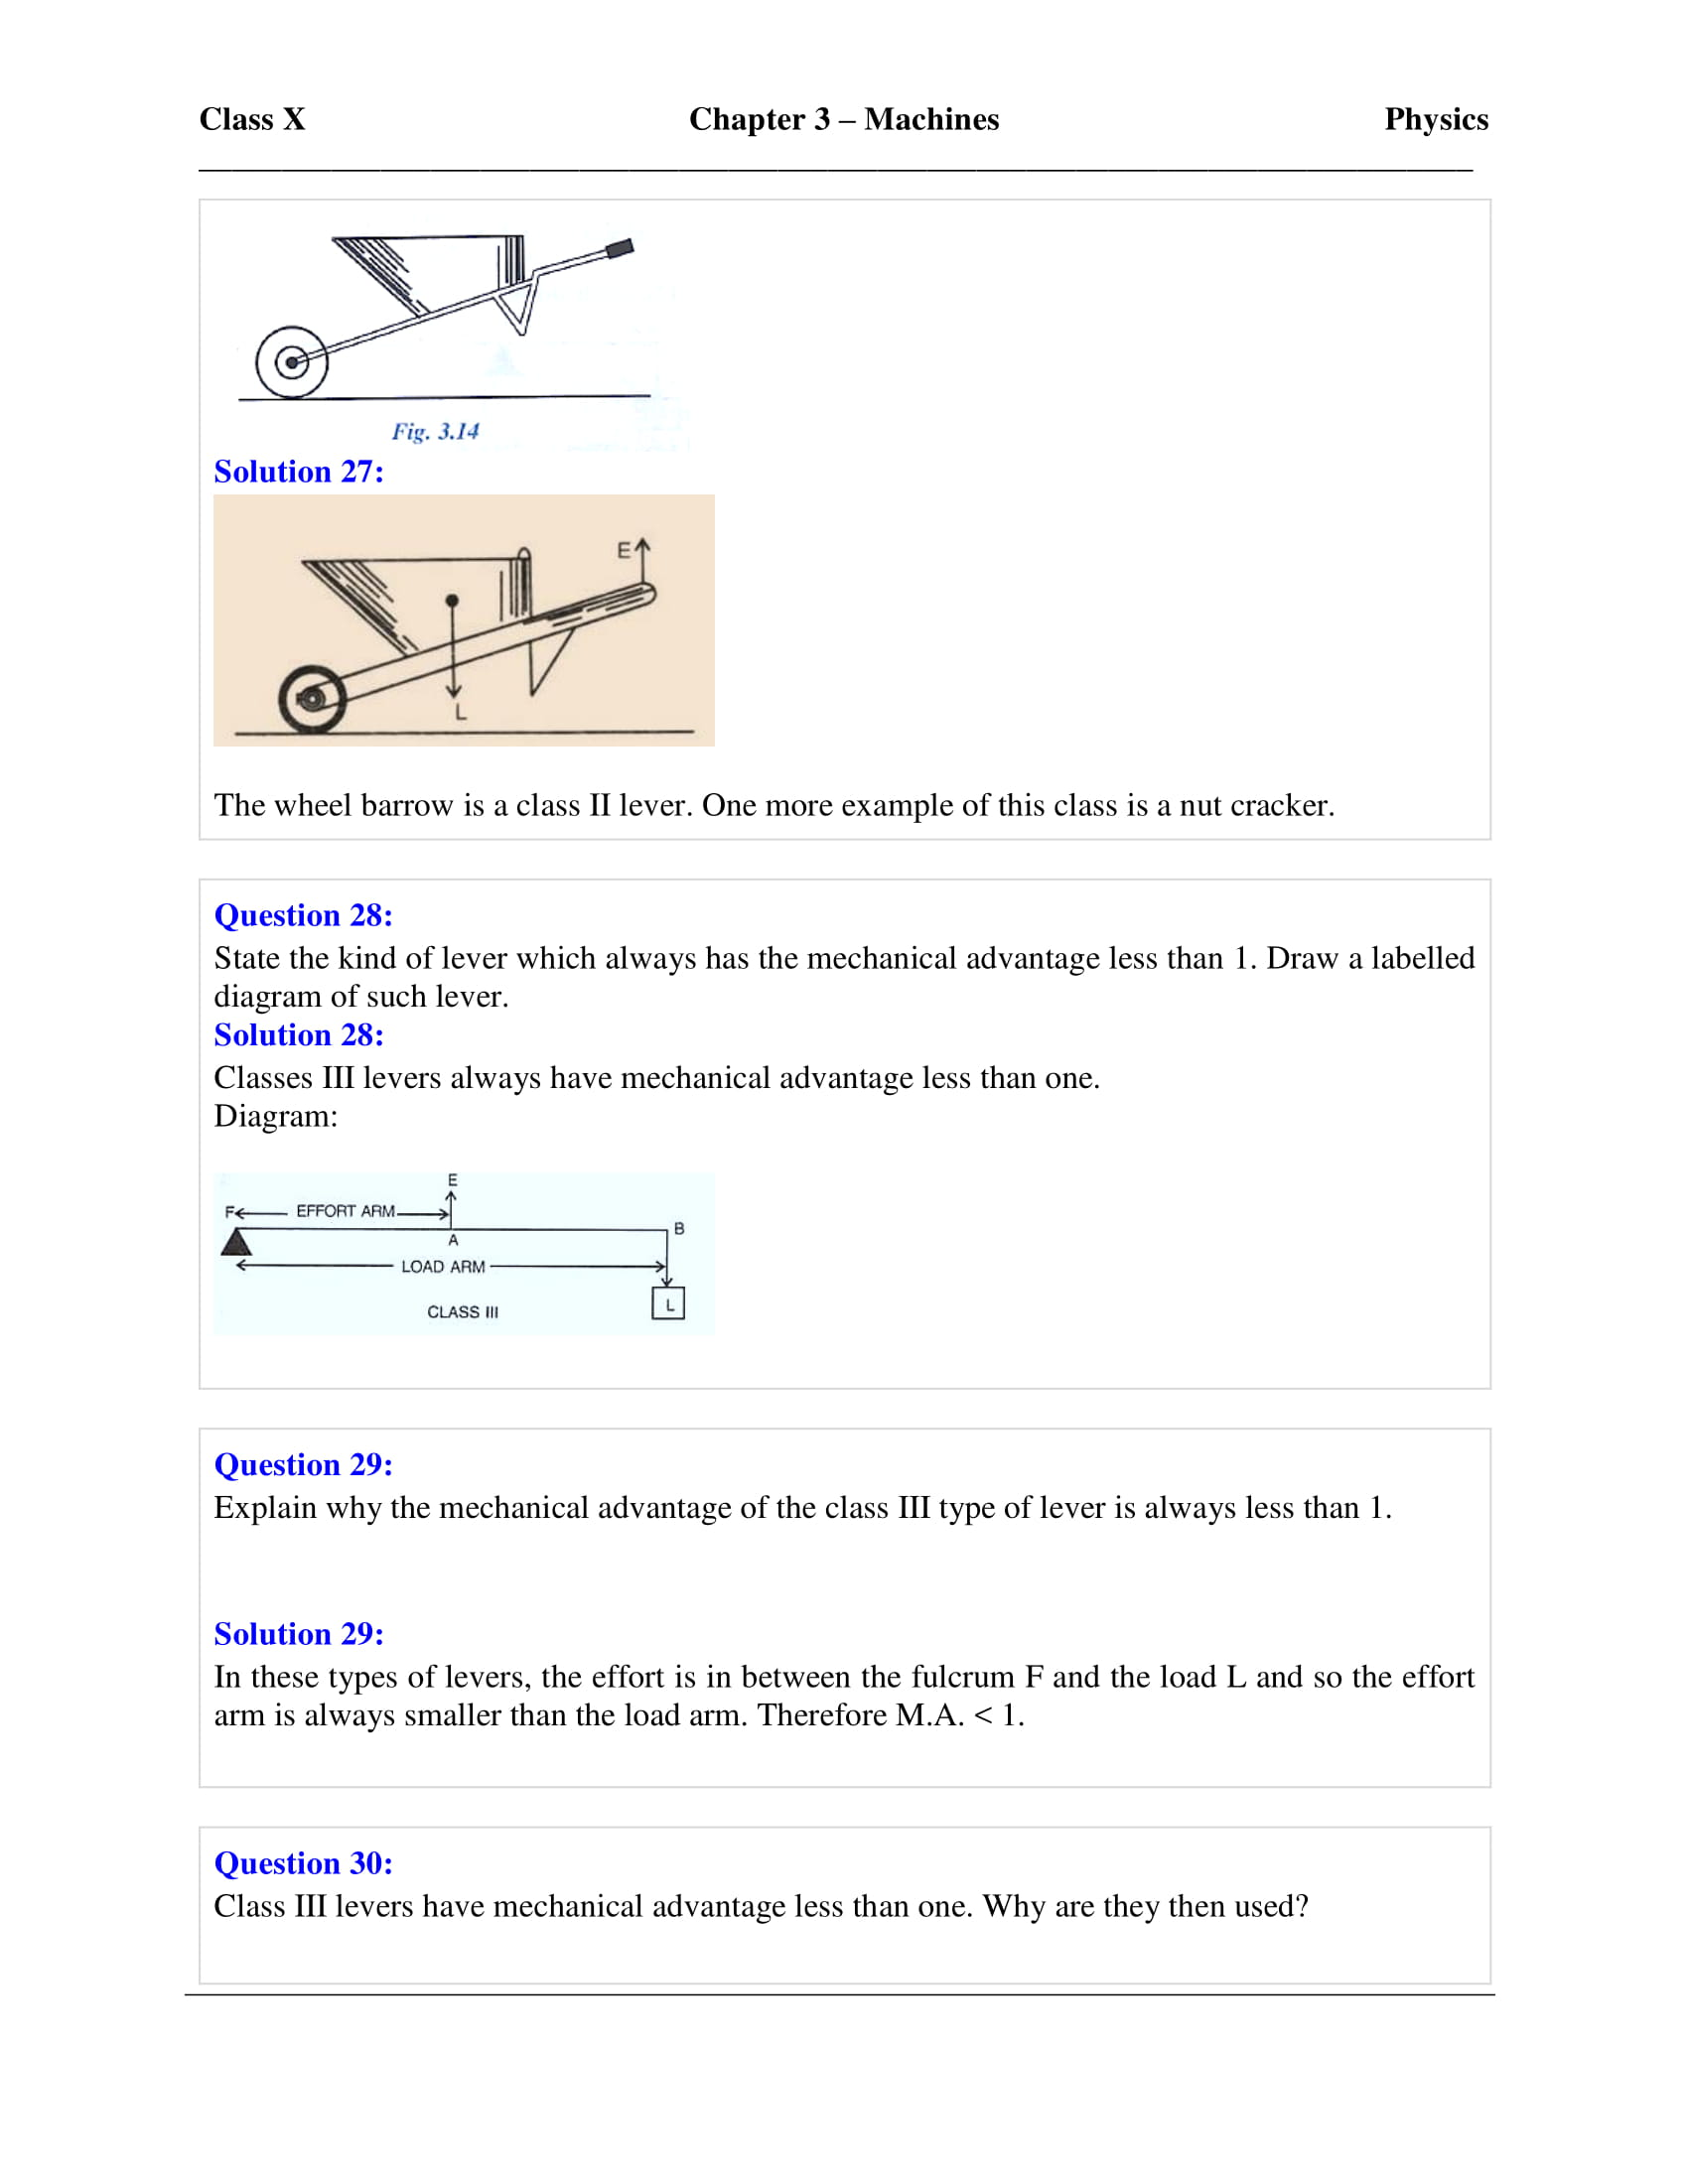 icse-selina-physics-solutions-class-10-chapter-3-machines-09